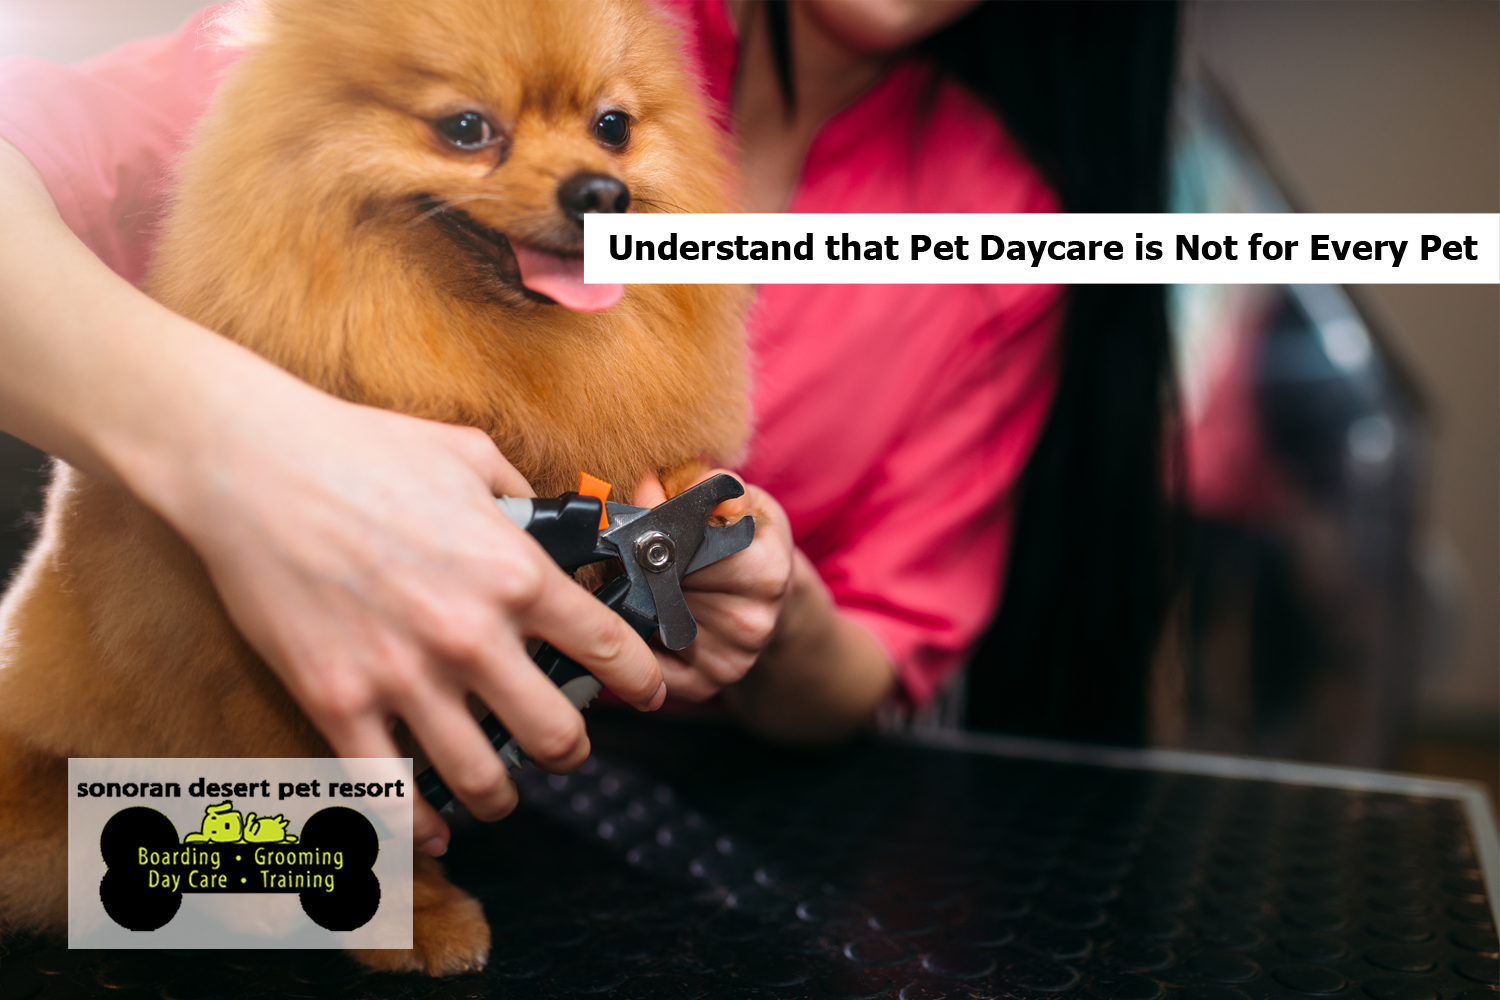 Understand that Pet Daycare is Not for Every Pet